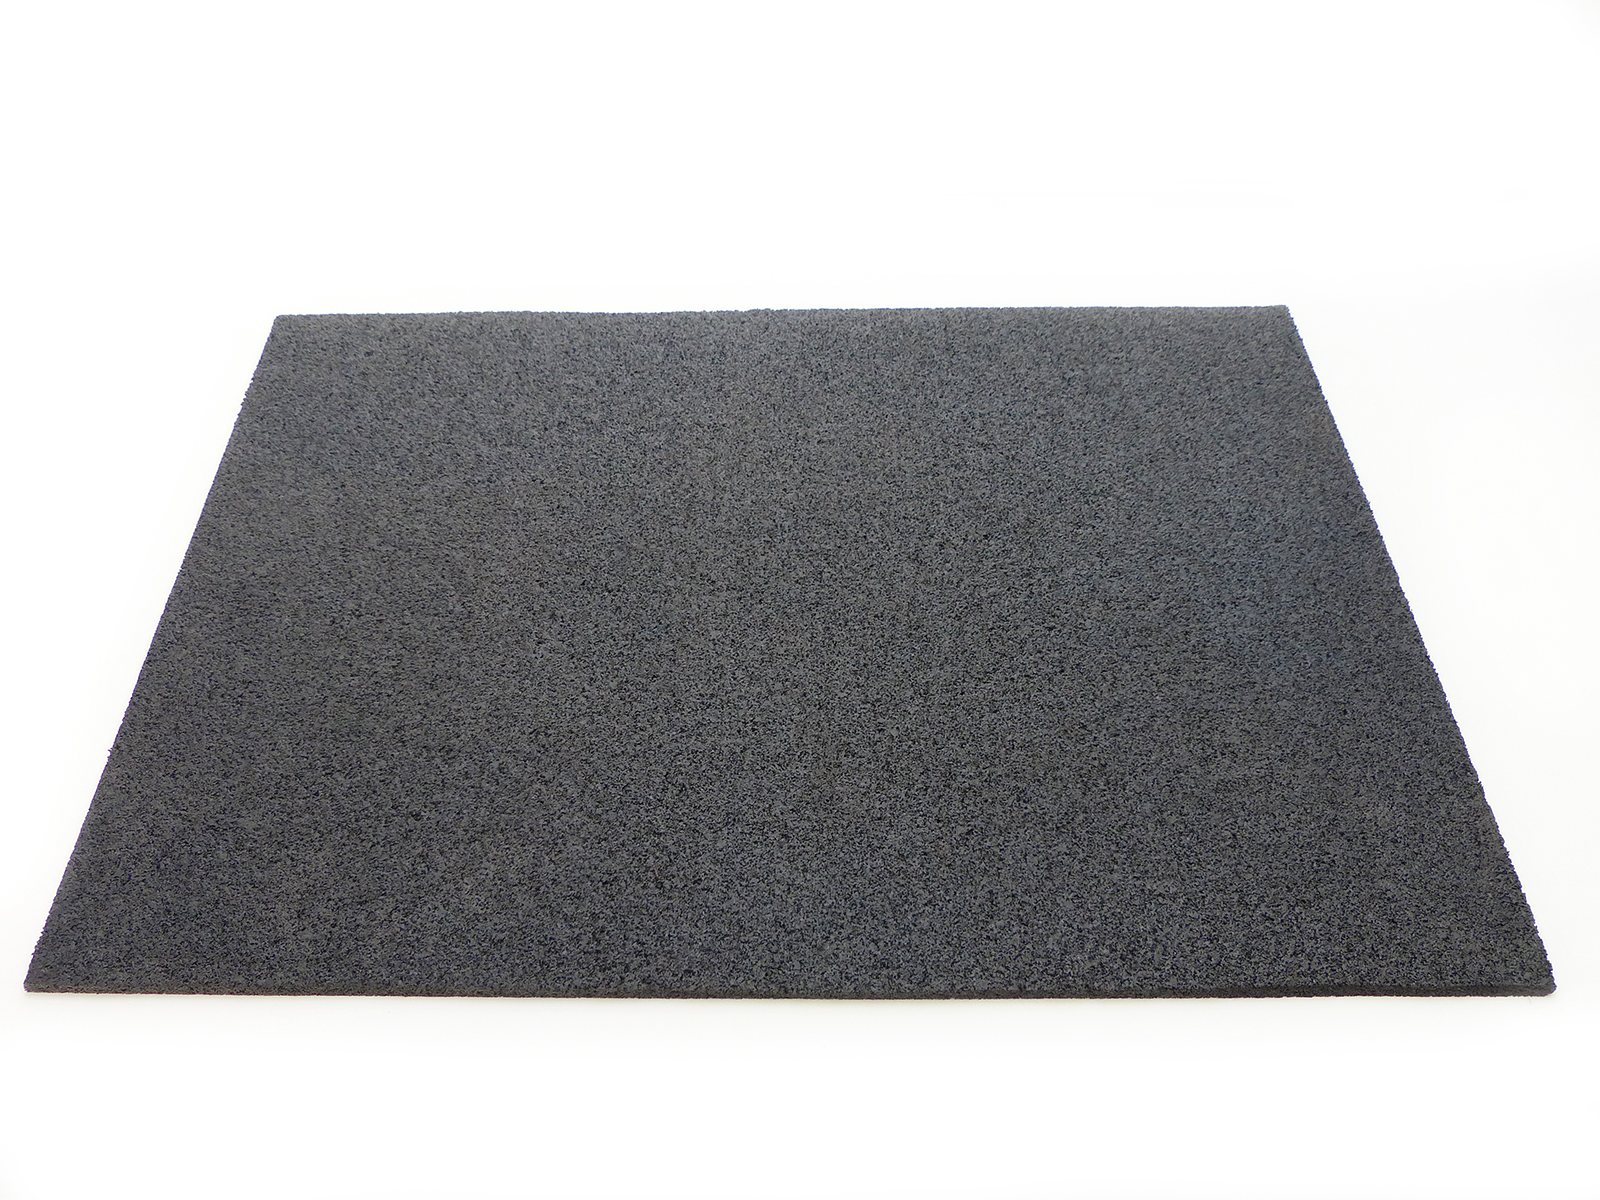 h track rubber w x doormat recycled resolutions doormatrecycled mats ultra tire post mat hd